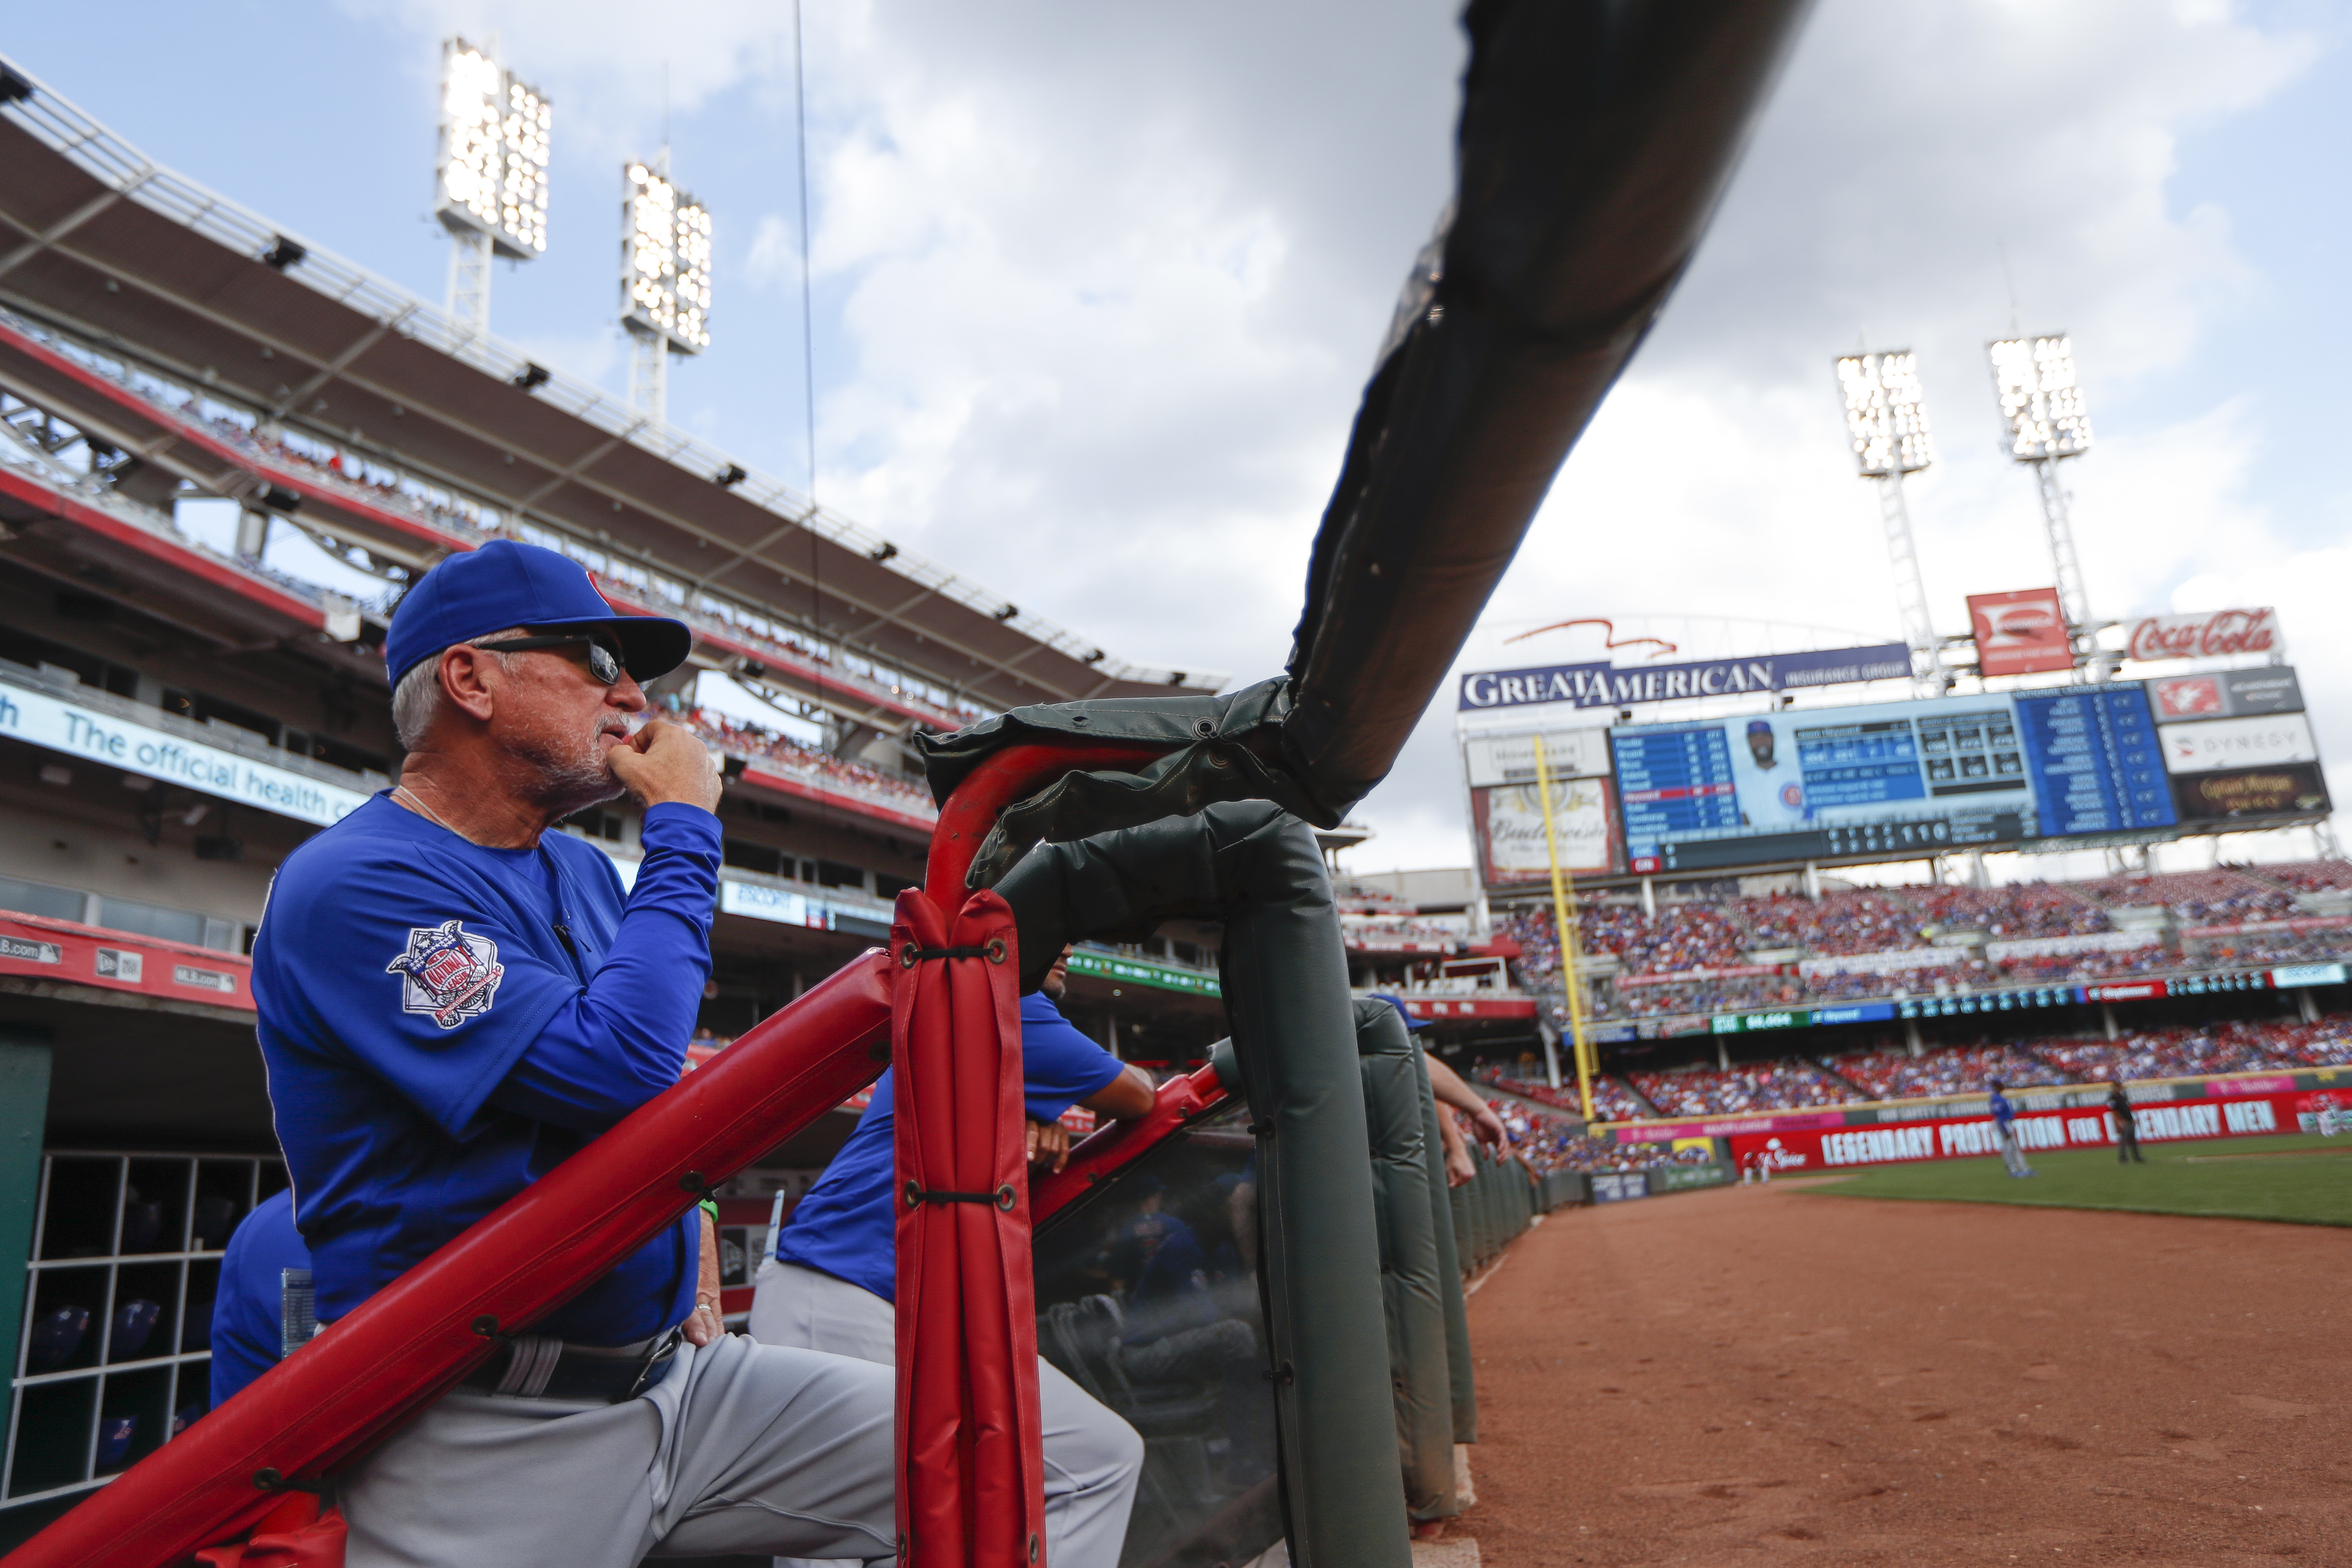 Chicago Cubs manager Joe Maddon watches from the dugout in the second inning of a baseball game against the Cincinnati Reds, Sunday, Oct. 2, 2016, in Cincinnati. (AP Photo/John Minchillo)